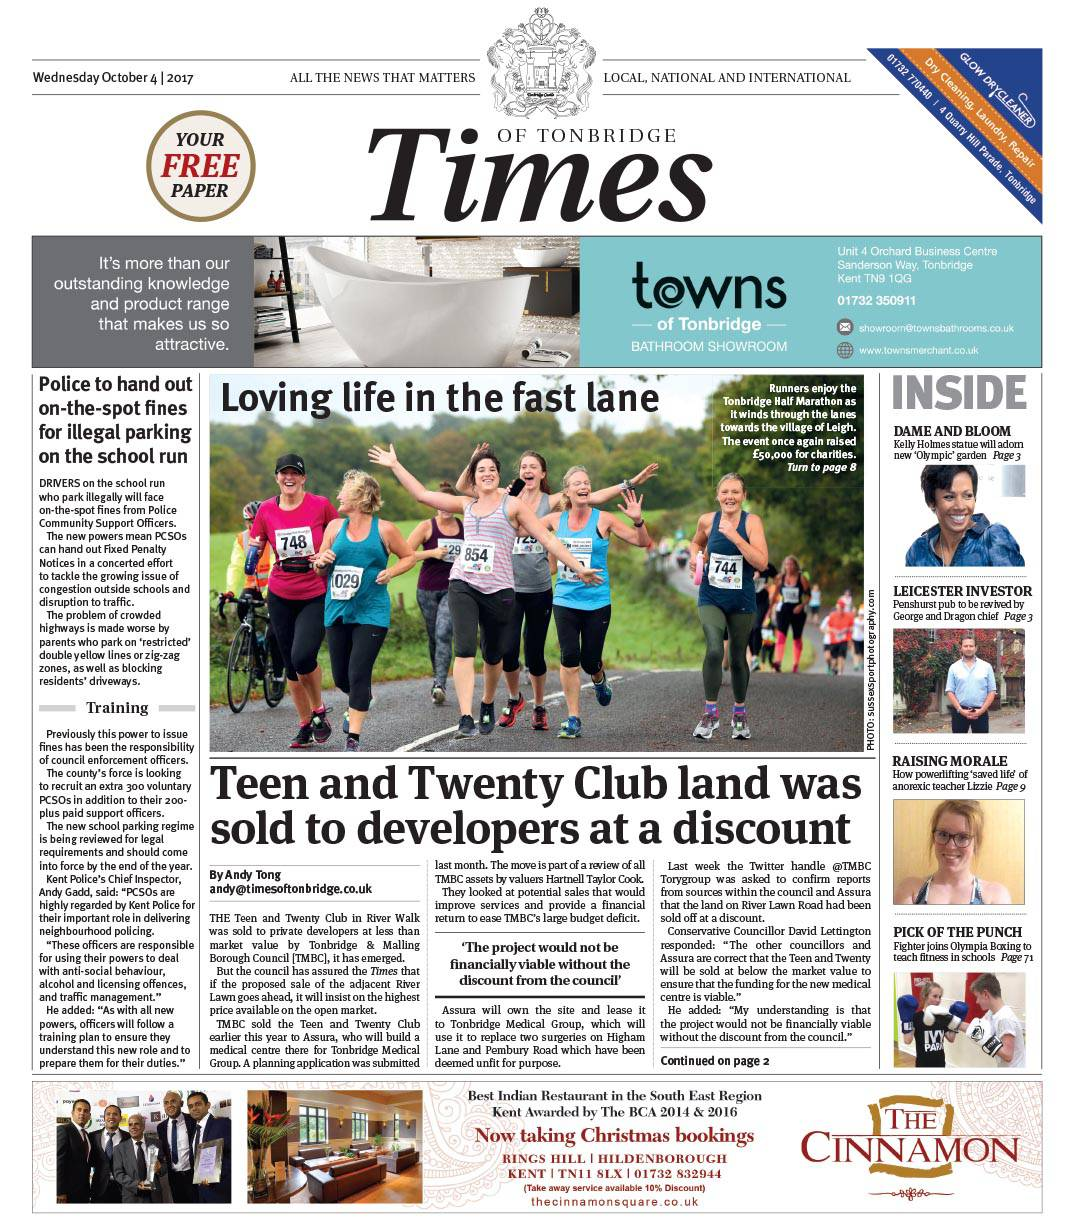 Read the Times of Tonbridge 4th October 2017